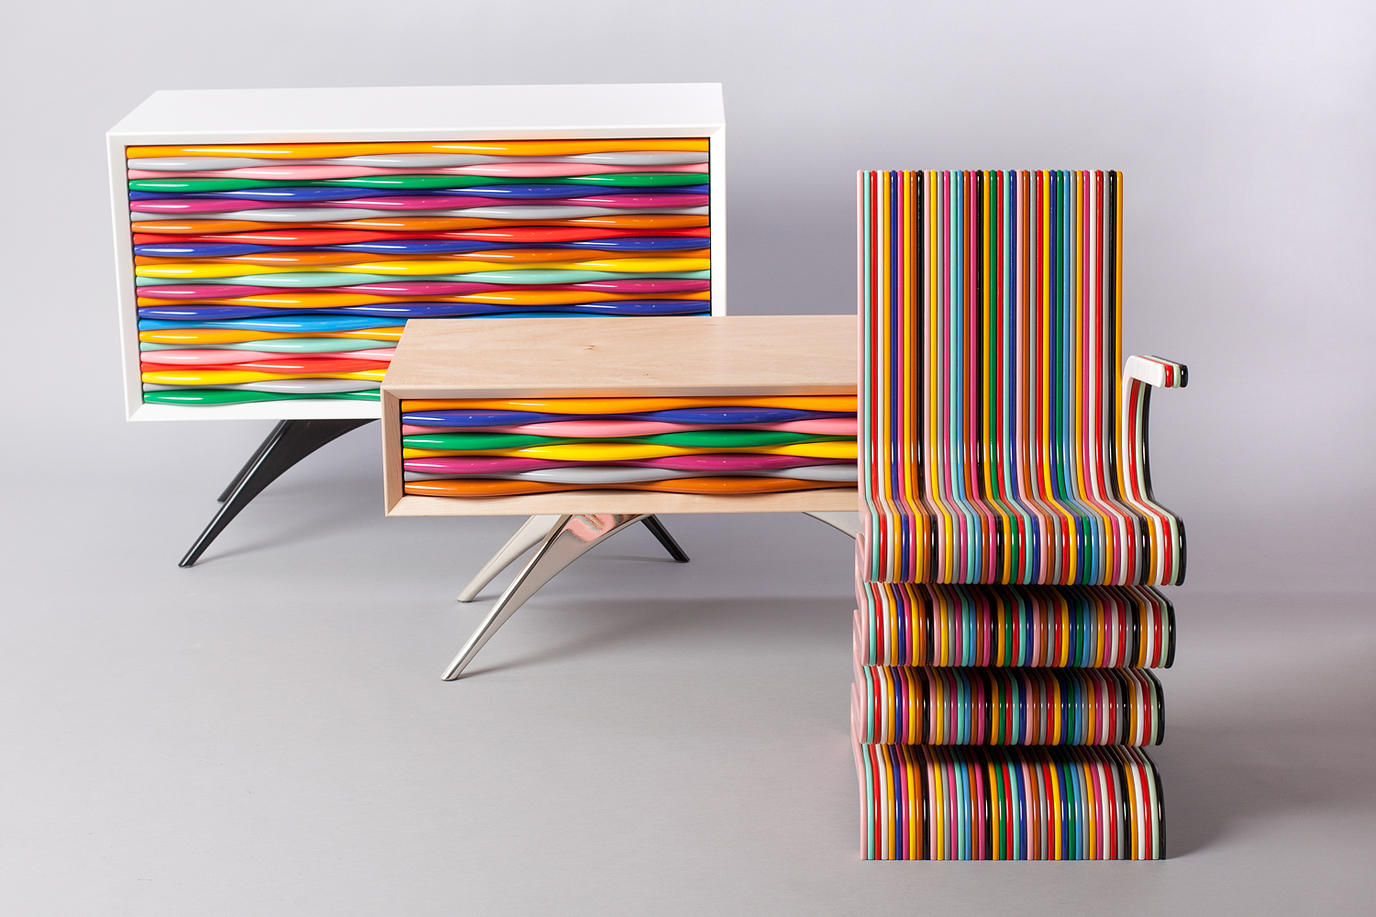 Design pop mobili multicolor di anthony hartley for Mobili di design sydney